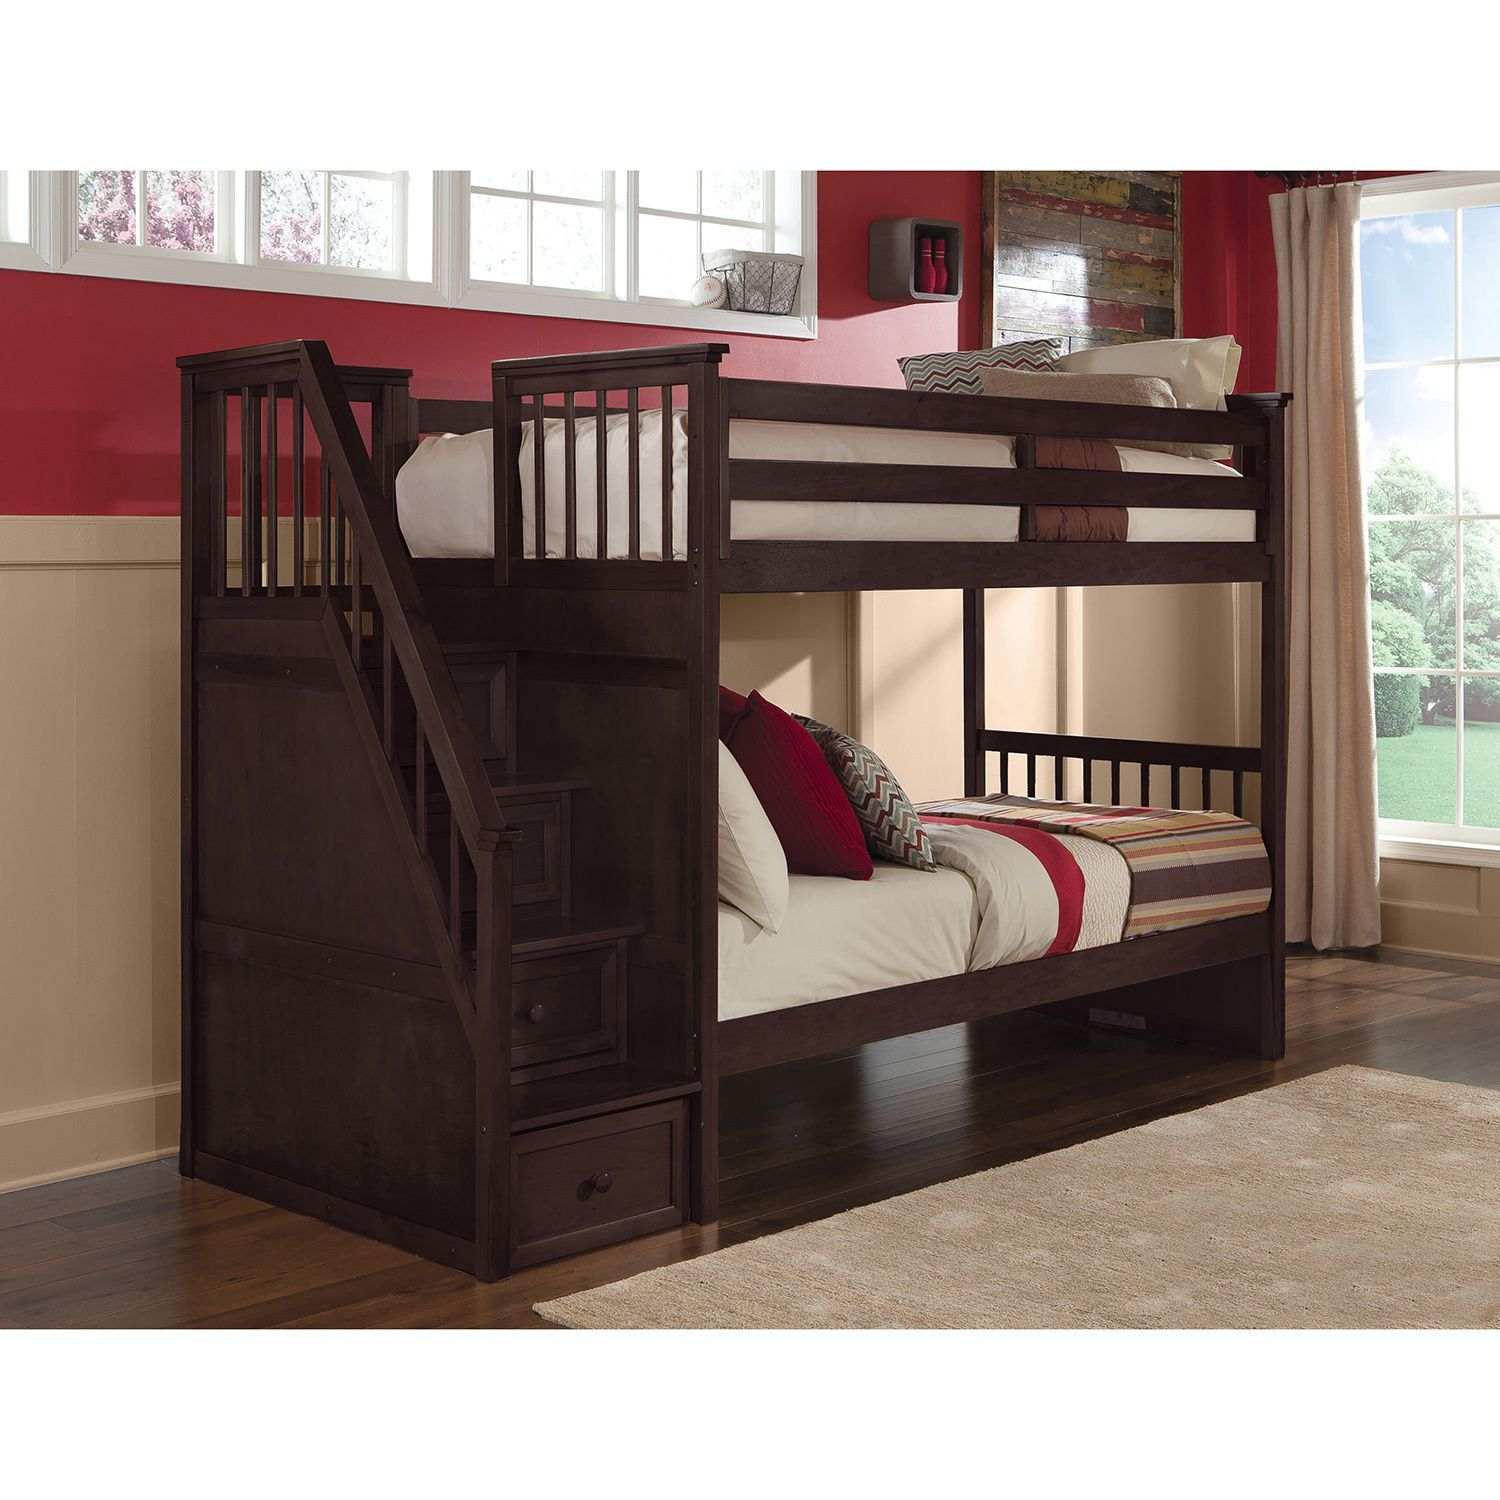 Slide for loft bed  Make going to bed fun for your kids with this School House Stair